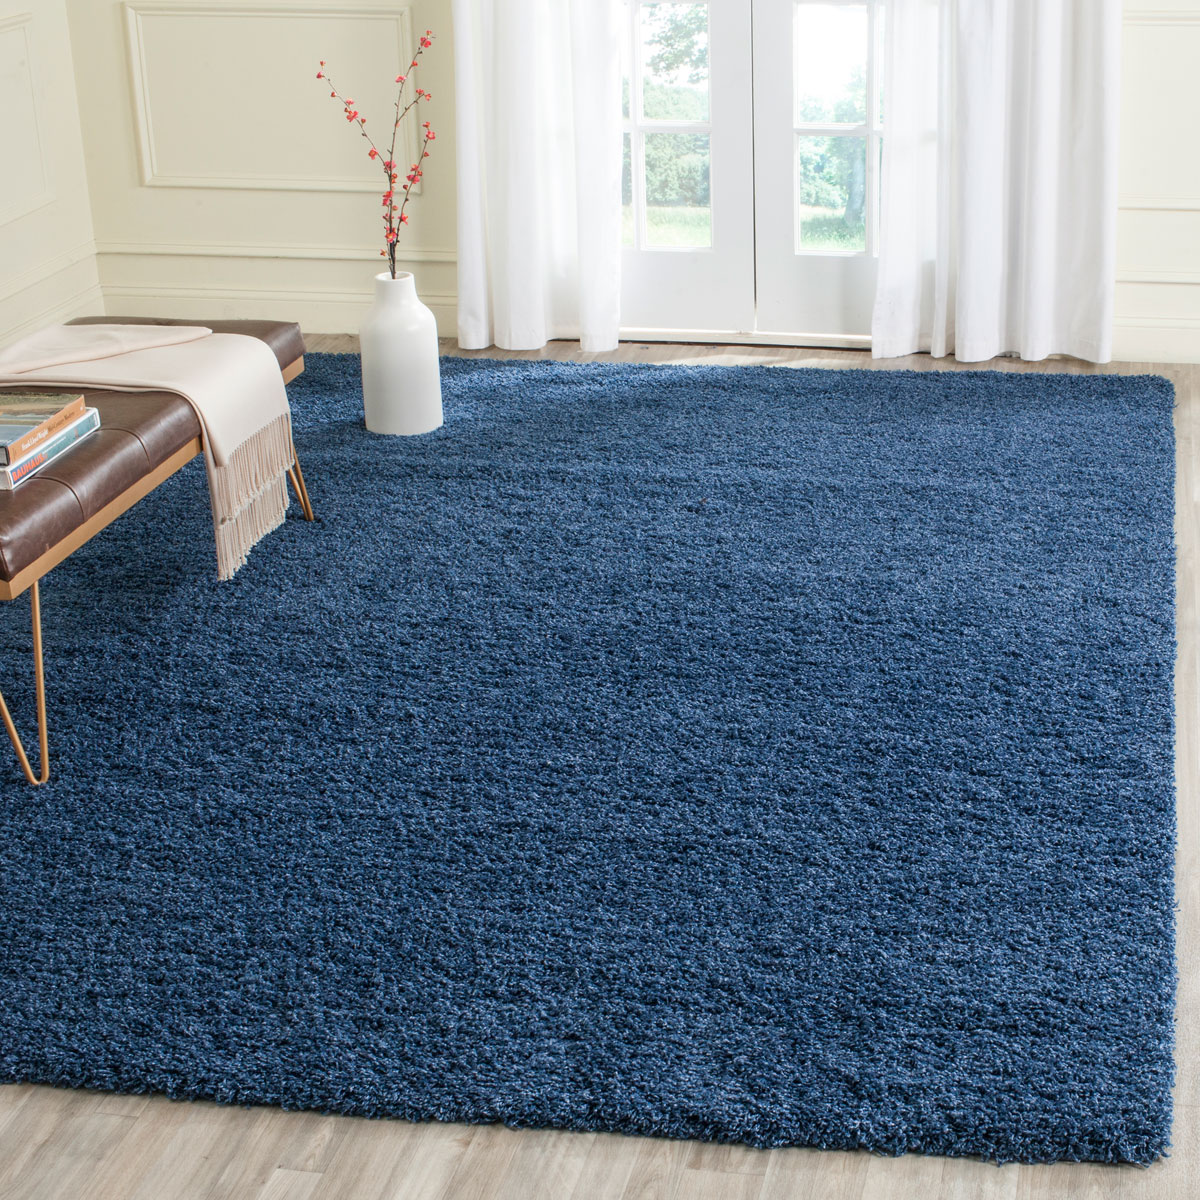 Plush Pile Blue Shag Rug Laguna Collection Safavieh Com